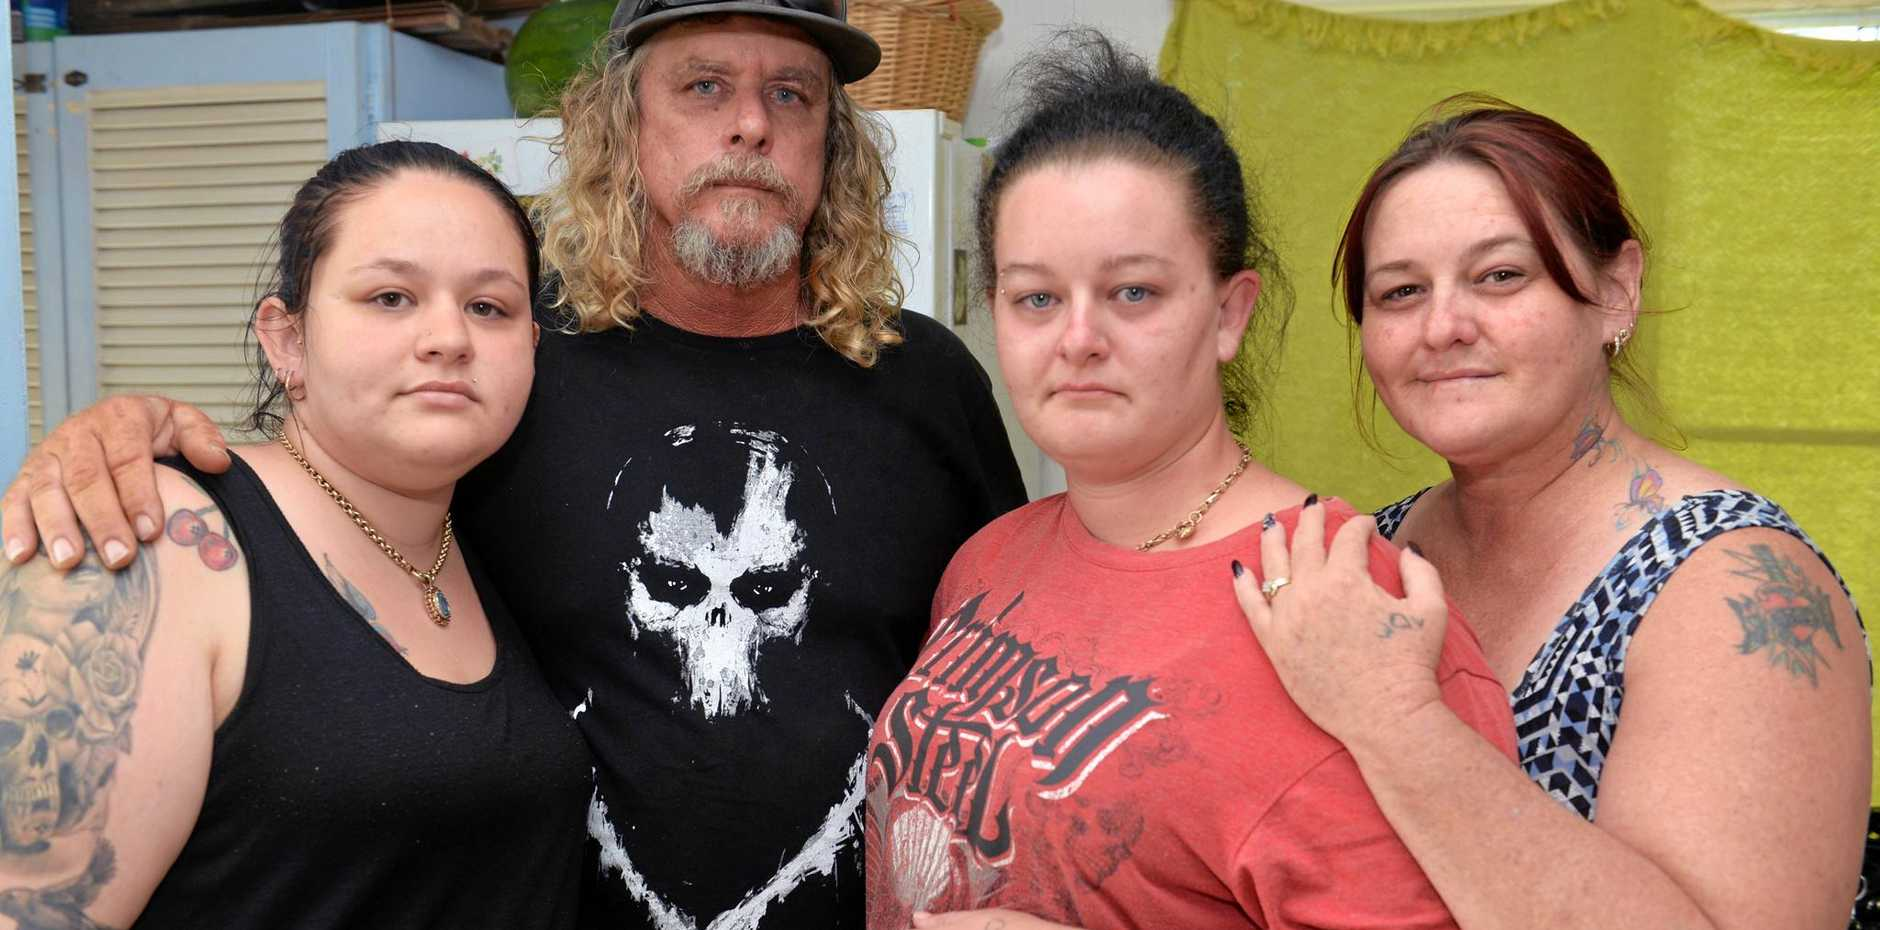 TRAGIC LOSS: Lucy Anderson (left) Chris Anderson, Kaylah Horder and Anne Anderson are mourning the loss of their son and brother.